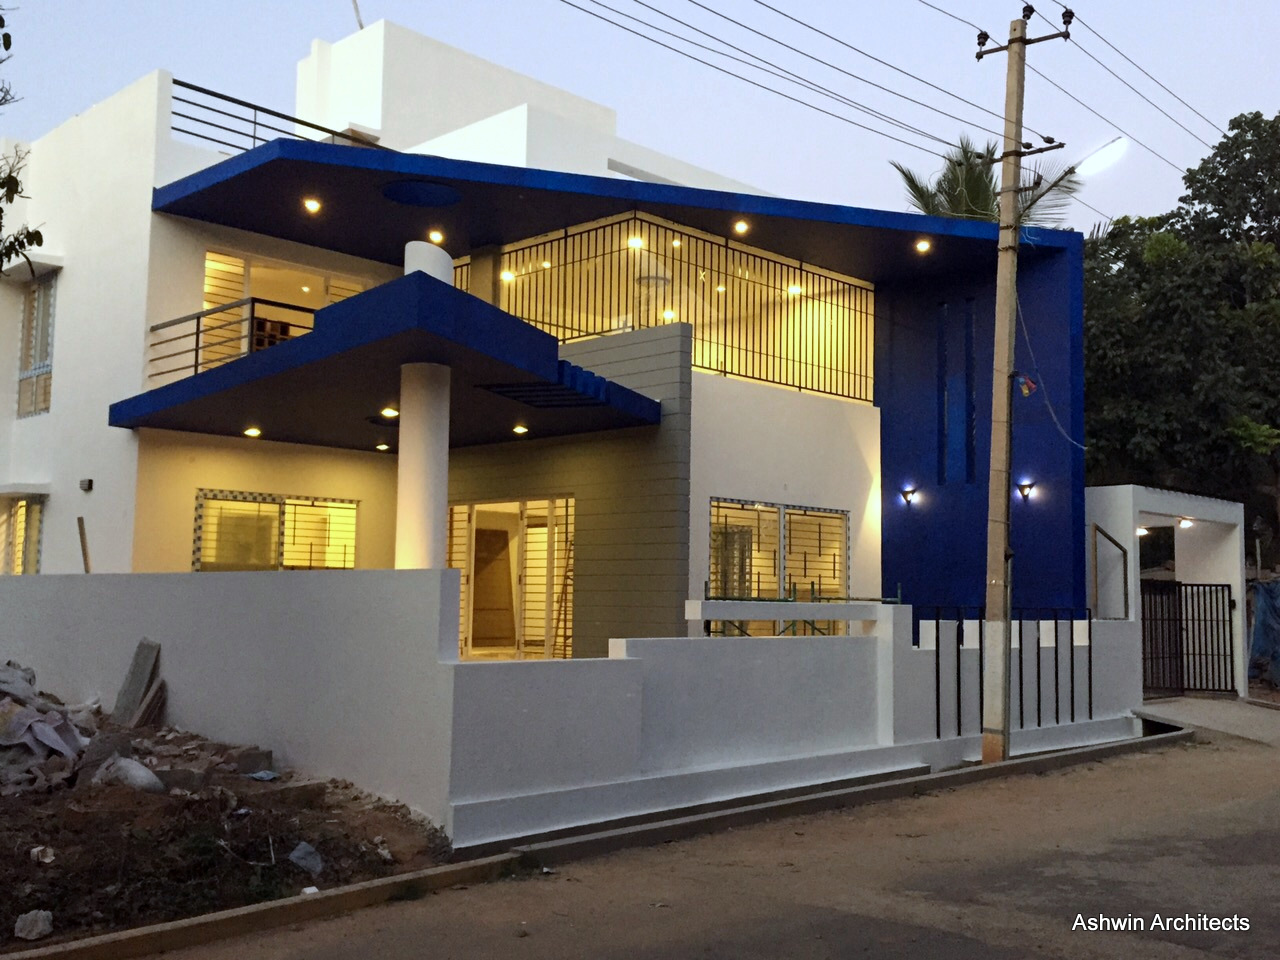 Mala S 50 X 80 Ft Bungalow In India By Ashwin Architects Ashwin Architects Archello